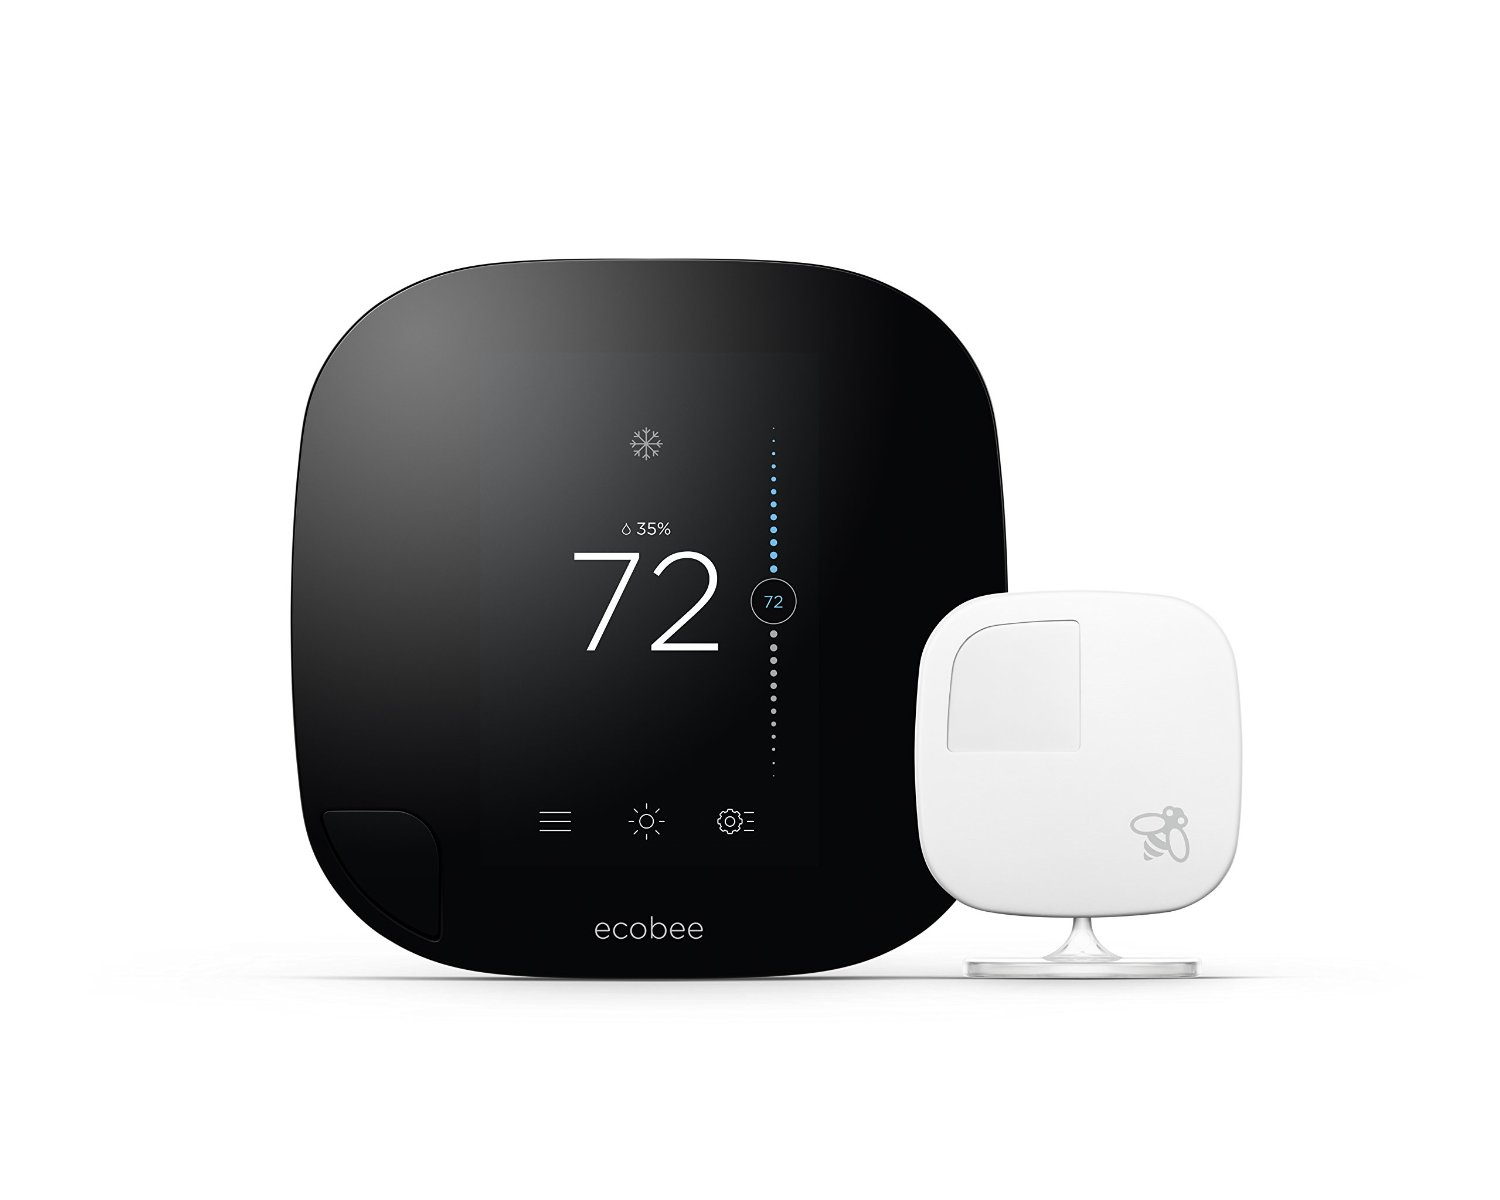 [ecobee3](http://www.amazon.com/ecobee3-Smarter-Thermostat-Remote-Generation/dp/B00ZIRV39M?SubscriptionId=AKIAJ7T5BOVUVRD2EFYQ&linkCode=xm2&creativeASIN=B00ZIRV39M&creative=165953&psc=1&camp=2025&tag=toolstoysdeals-20) states it can lower your energy bill by 23% annually.